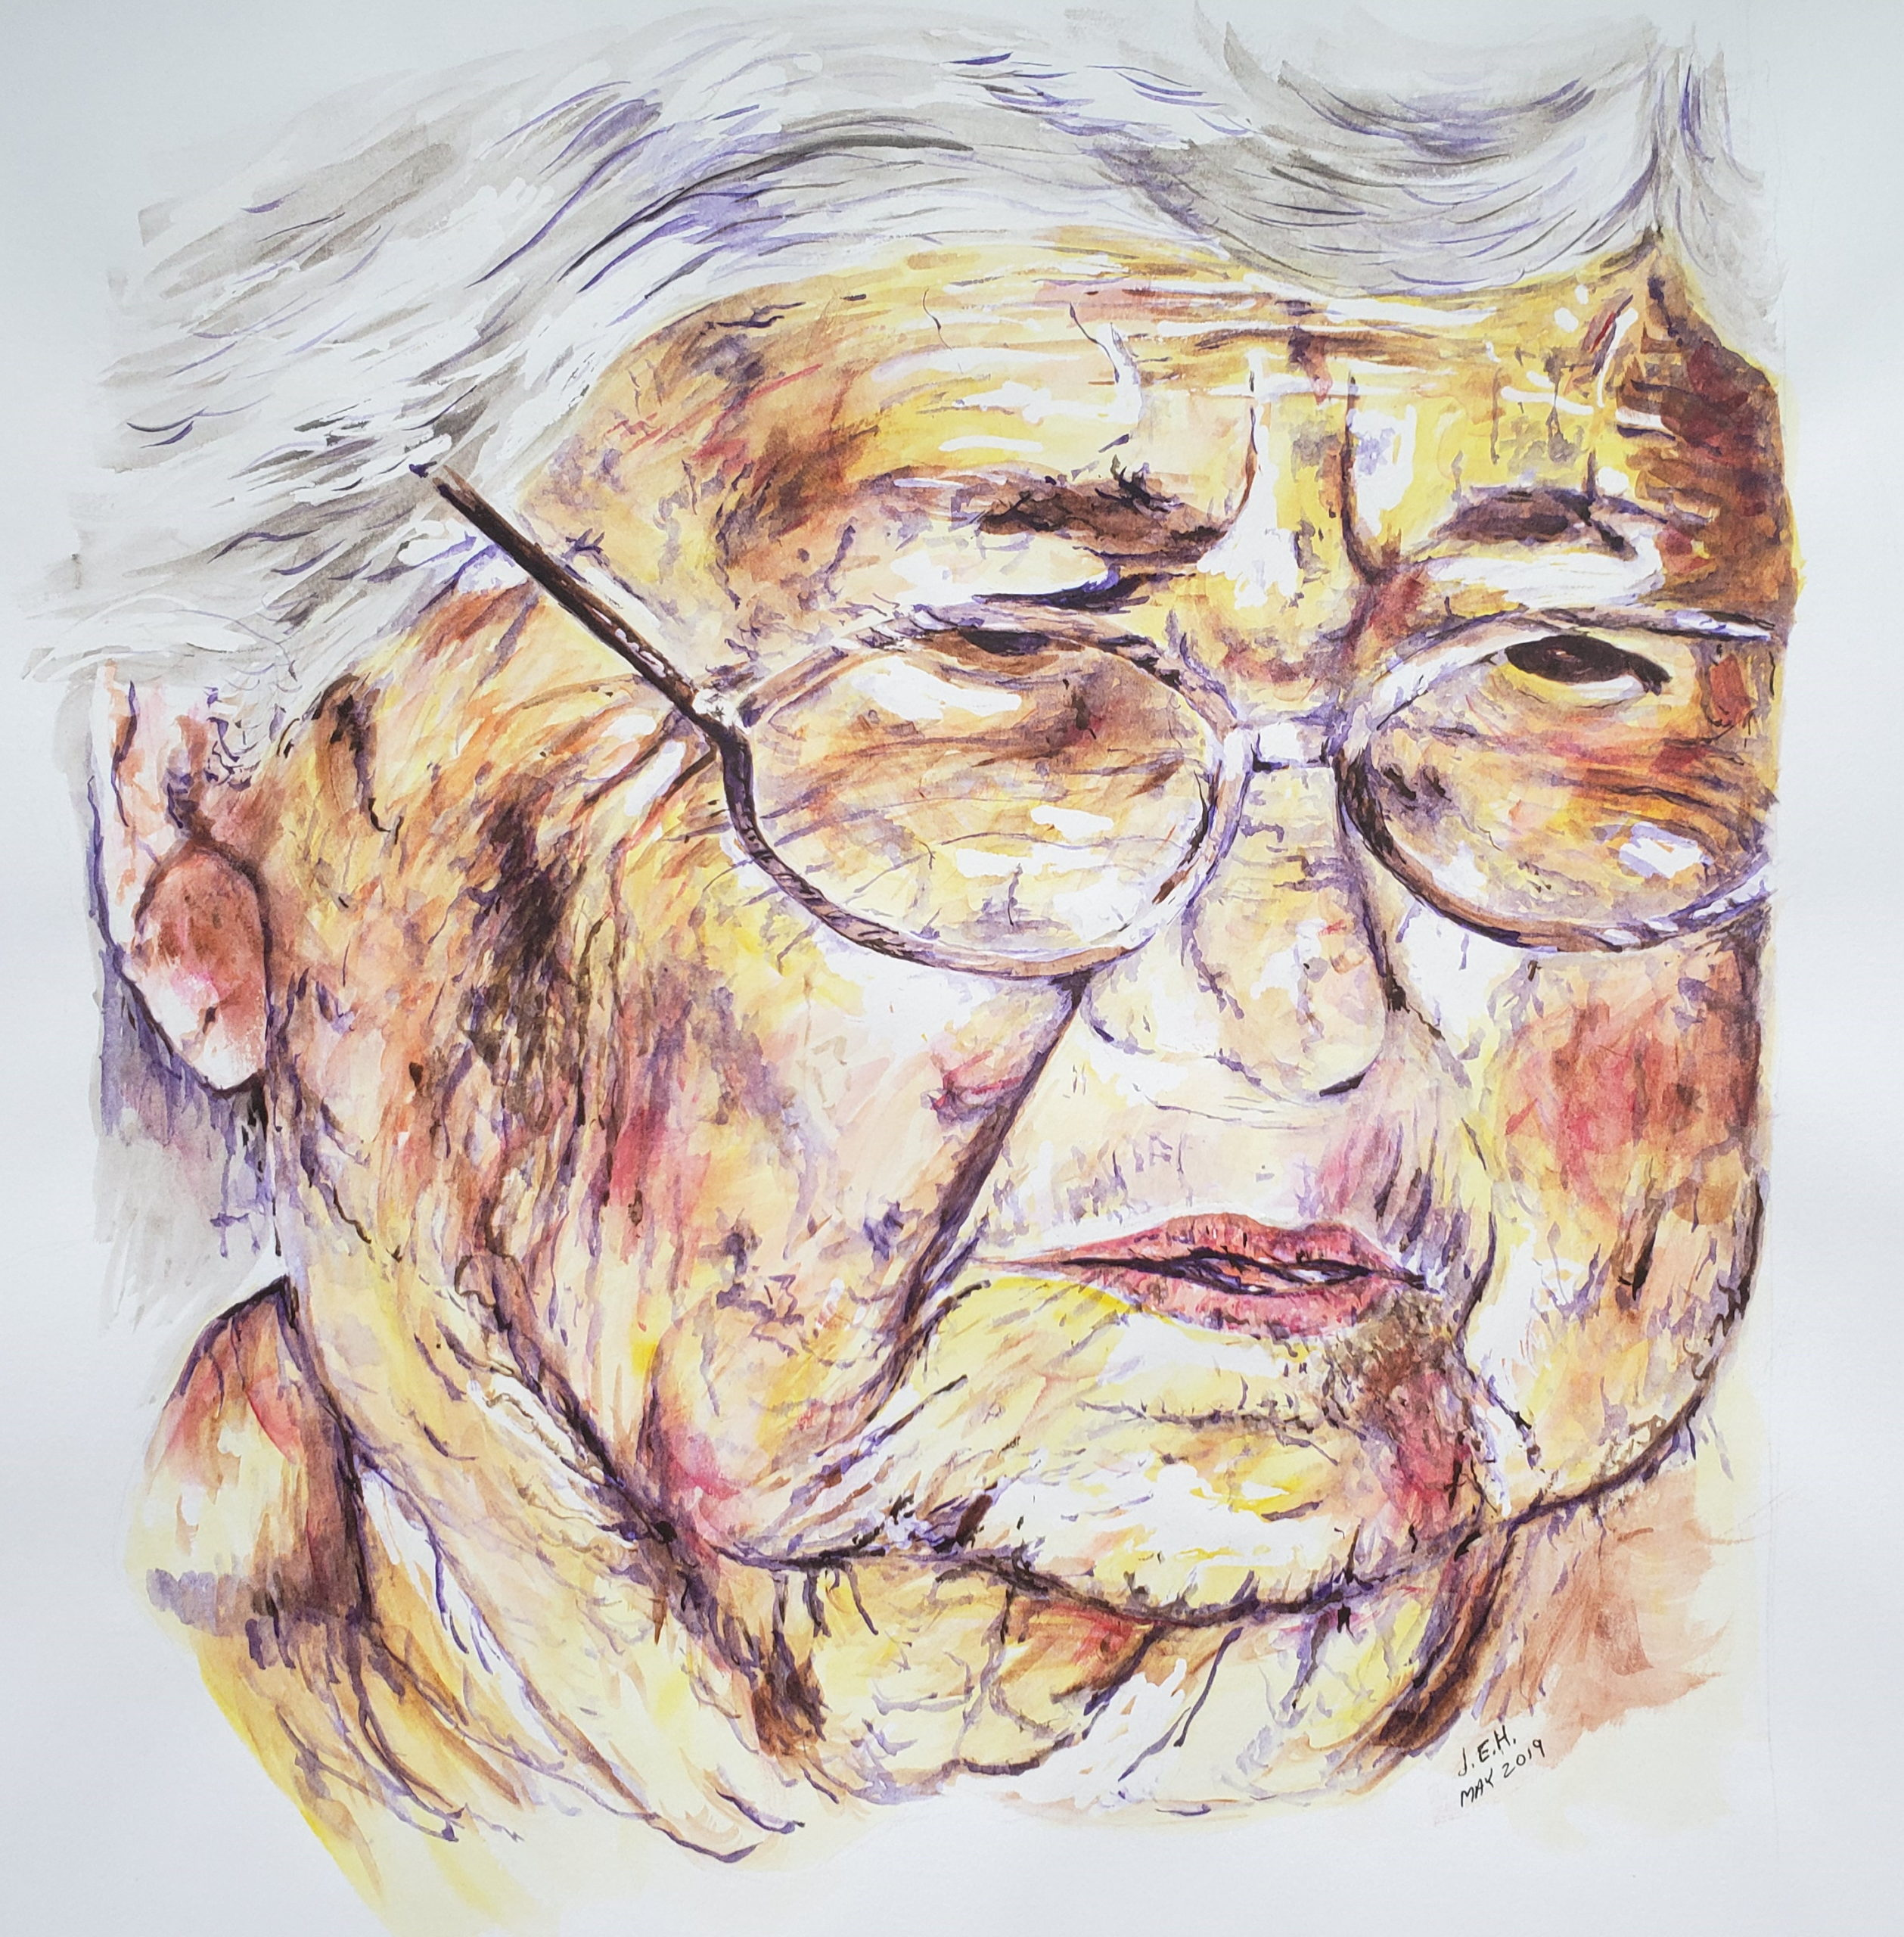 Watercolor sketch, old face, by John Huisman